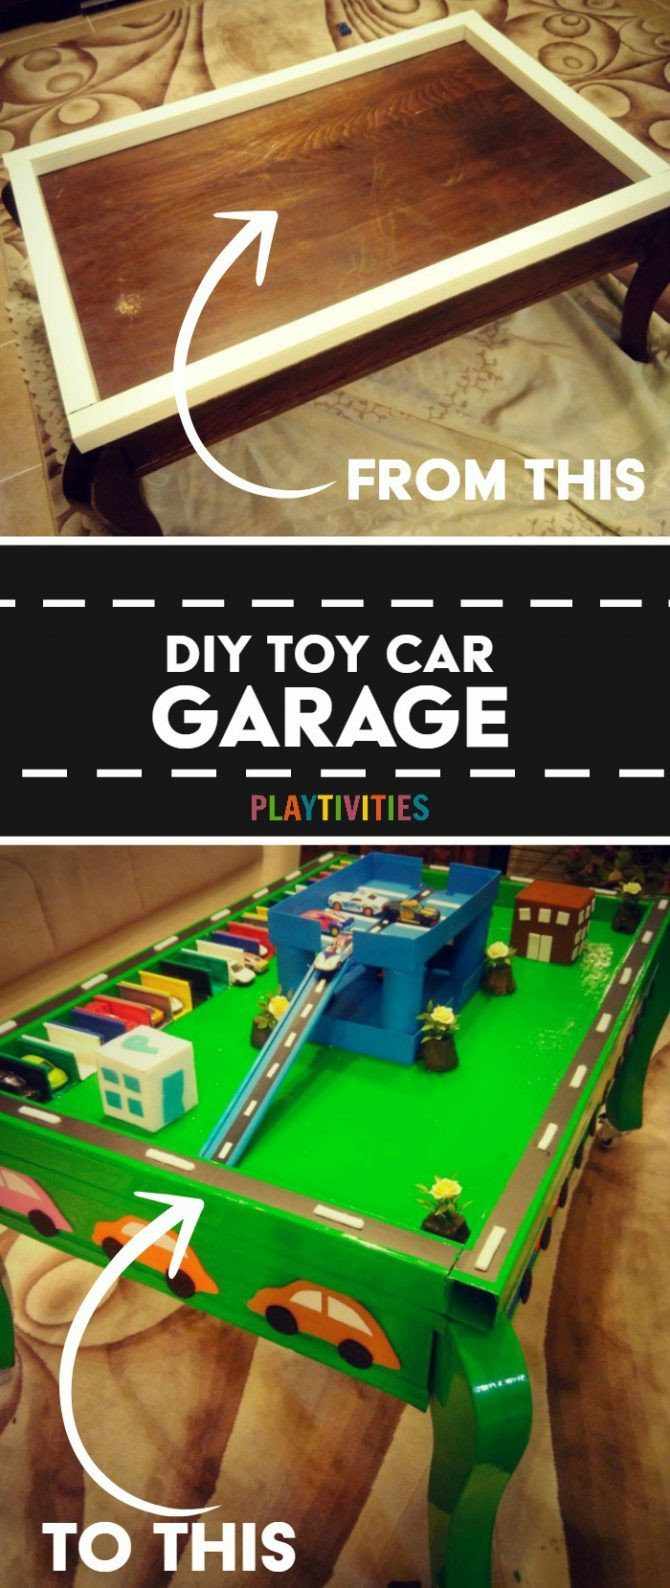 Best ideas about DIY Toy Car Garage . Save or Pin DIY Toy Car Garage Table That Cost Almost Nothing To Make Now.